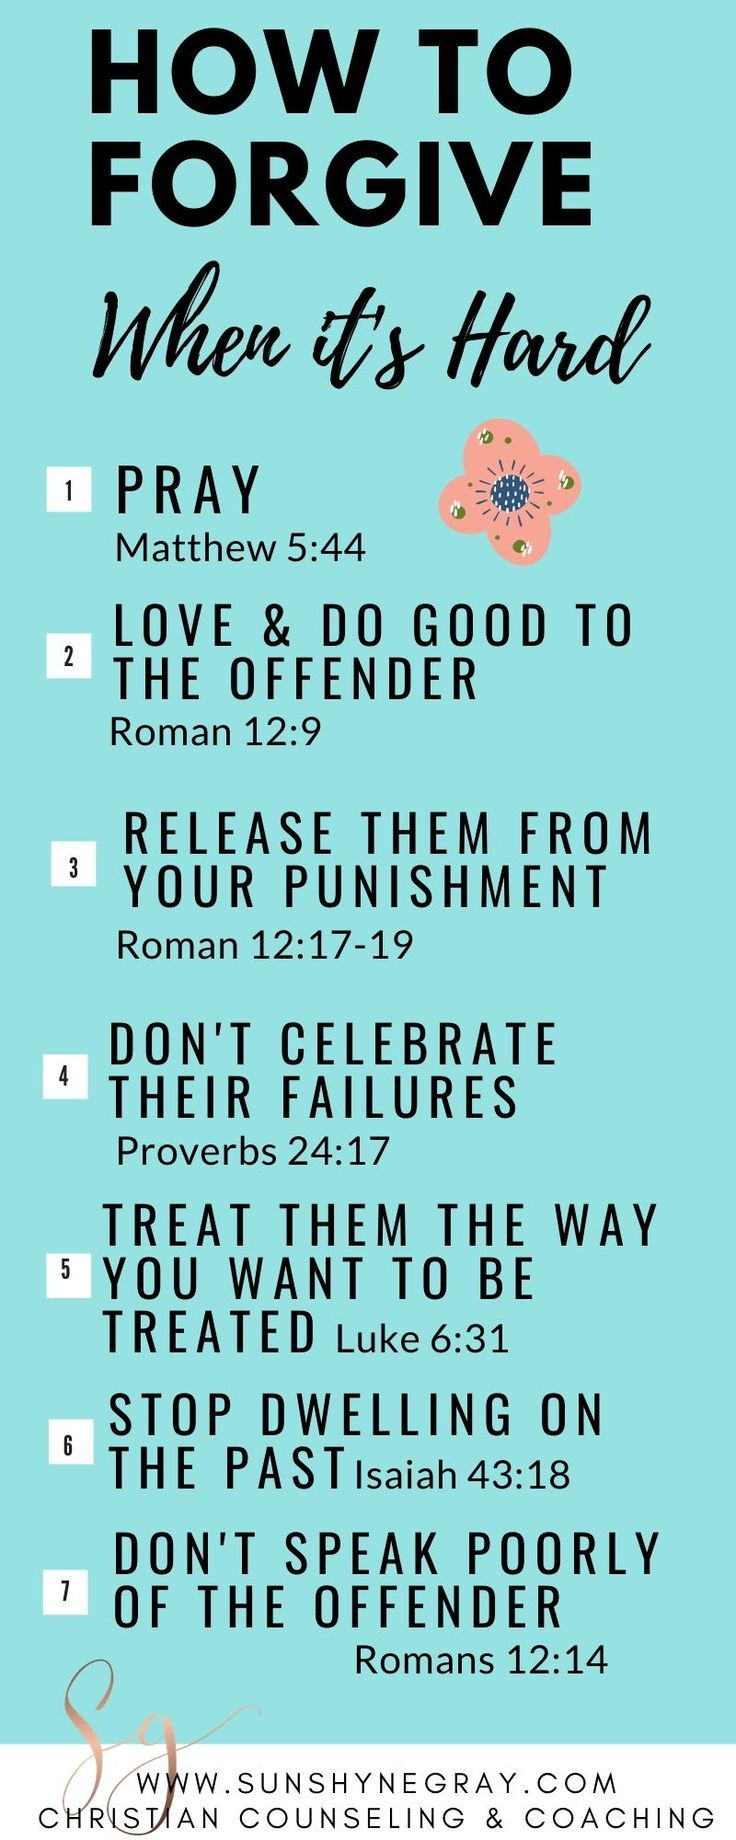 Check out 7 Scriptures on Forgiveness even when it's hard, they are not sorry and you don't want to forgive. Overcome bitterness and resentment with forgiveness. This biblical guide to forgiveness applies to all relationships including marriage. #forgiveness #forgive #bitterness #sorry #christianmentalhealth